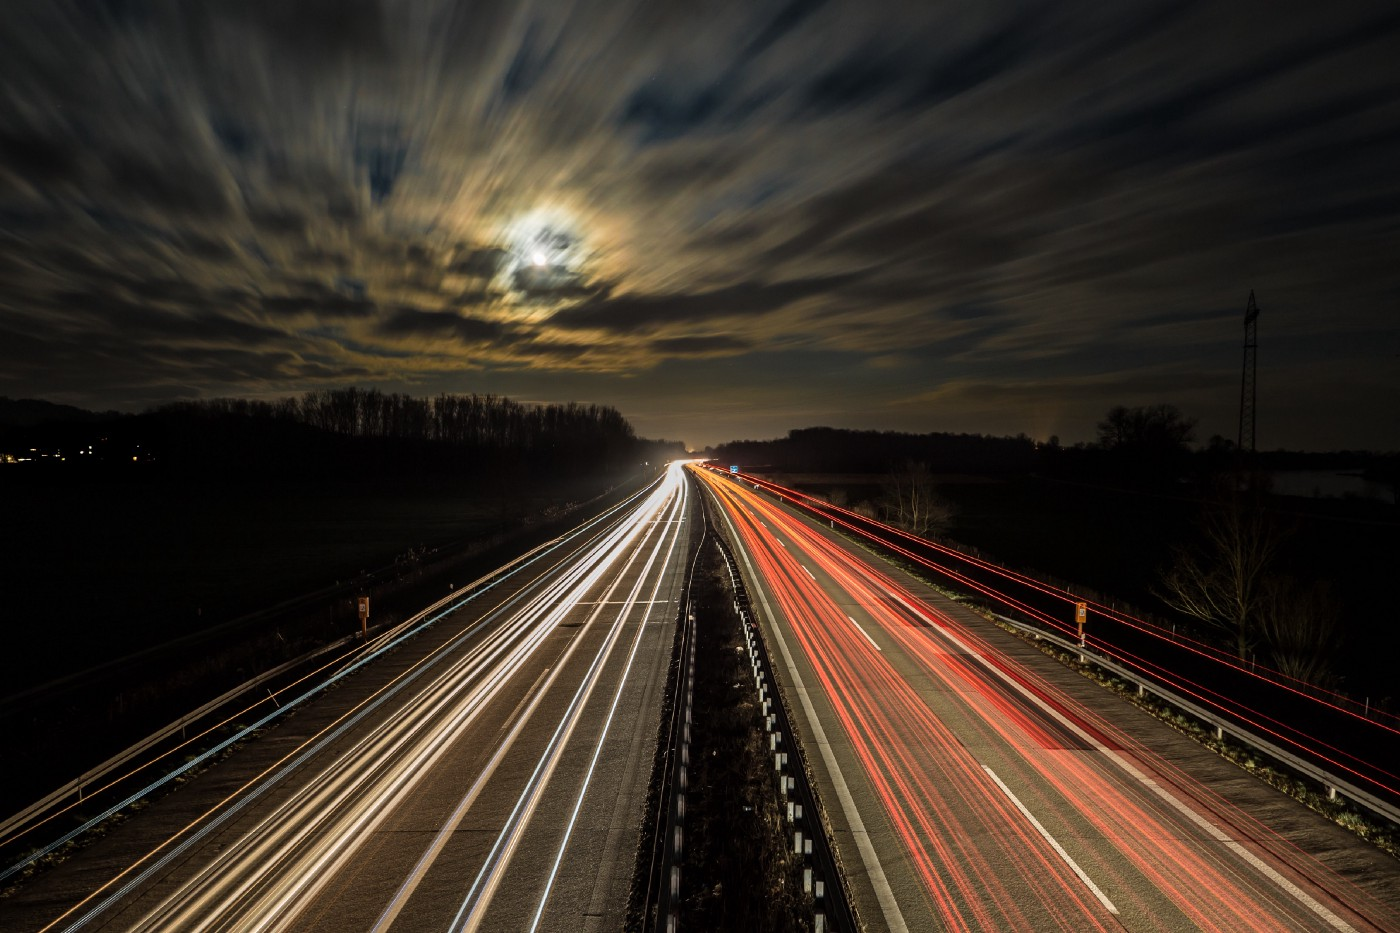 Night sky with time-lapse image of cars driving on highway.